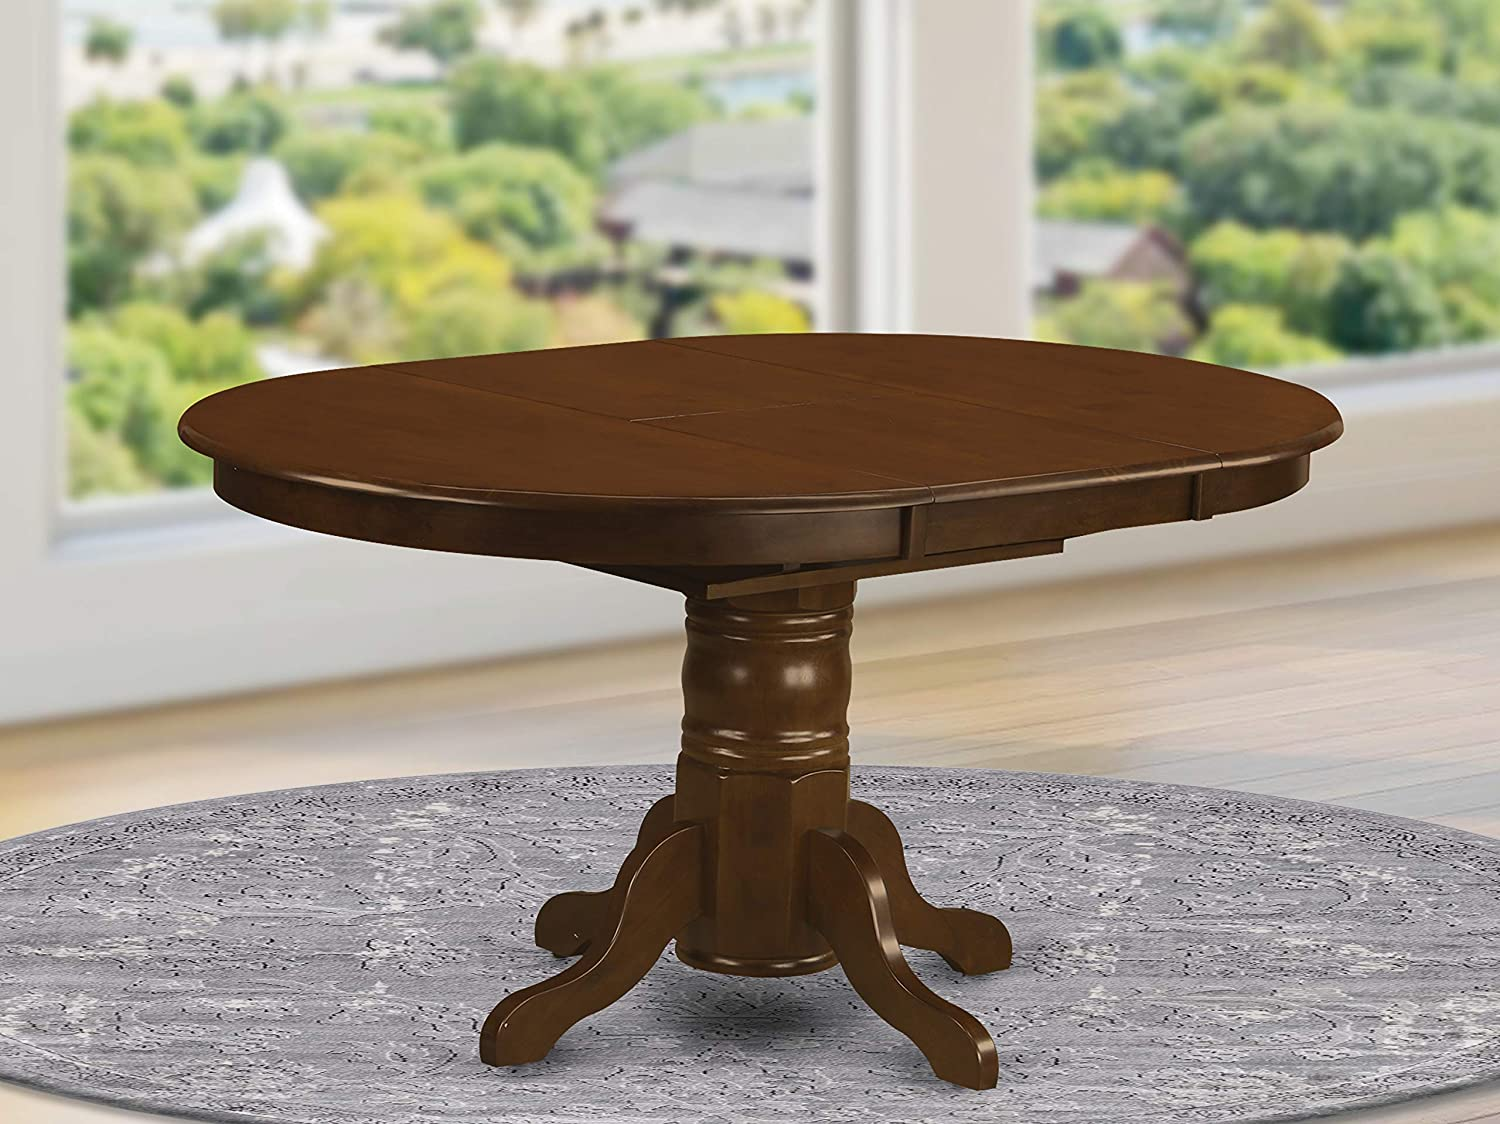 Amazon Com East West Furniture Butterfly Leaf Oval Dining Table Espresso Table Top And Espresso Finish Pedestal Legs Solid Wood Frame Kitchen Table Furniture Decor